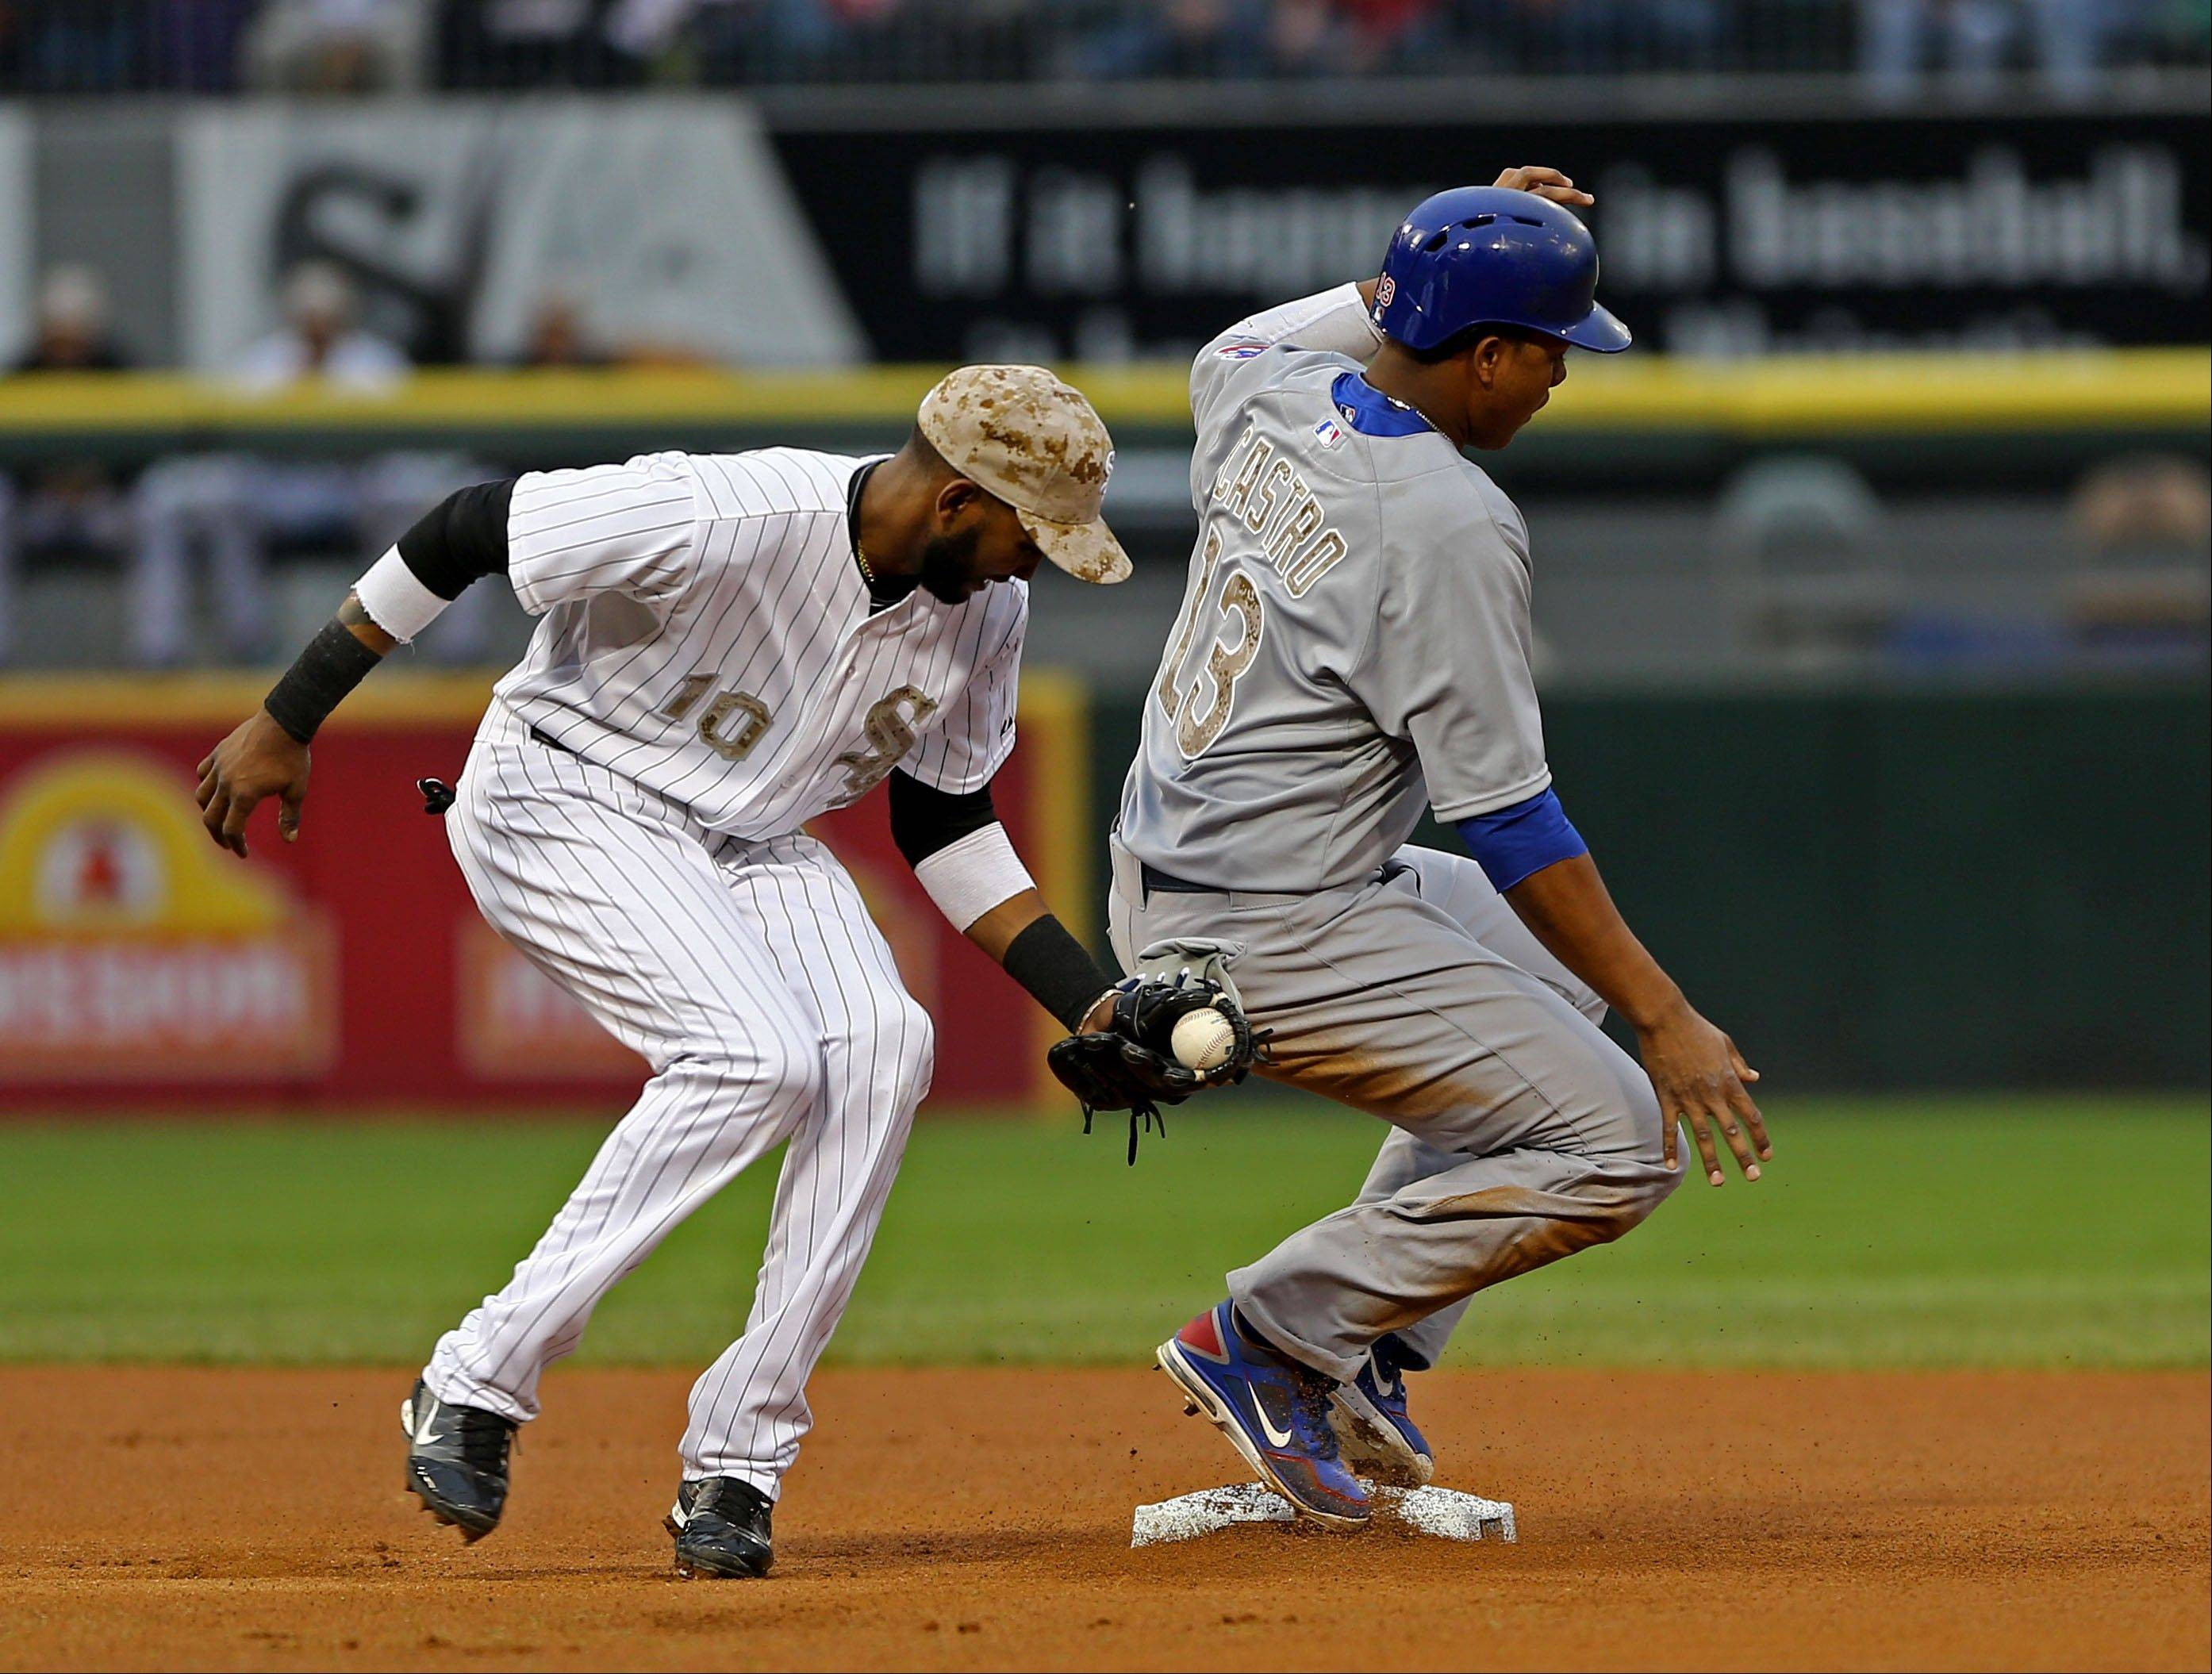 The Cubs� Starlin Castro steals second base in the first inning Monday night after White Sox shortstop Alexei Ramirez was late getting over. The Cubs ended up with a run because of the miscue, and, for the Sox, it was all downhill after that.